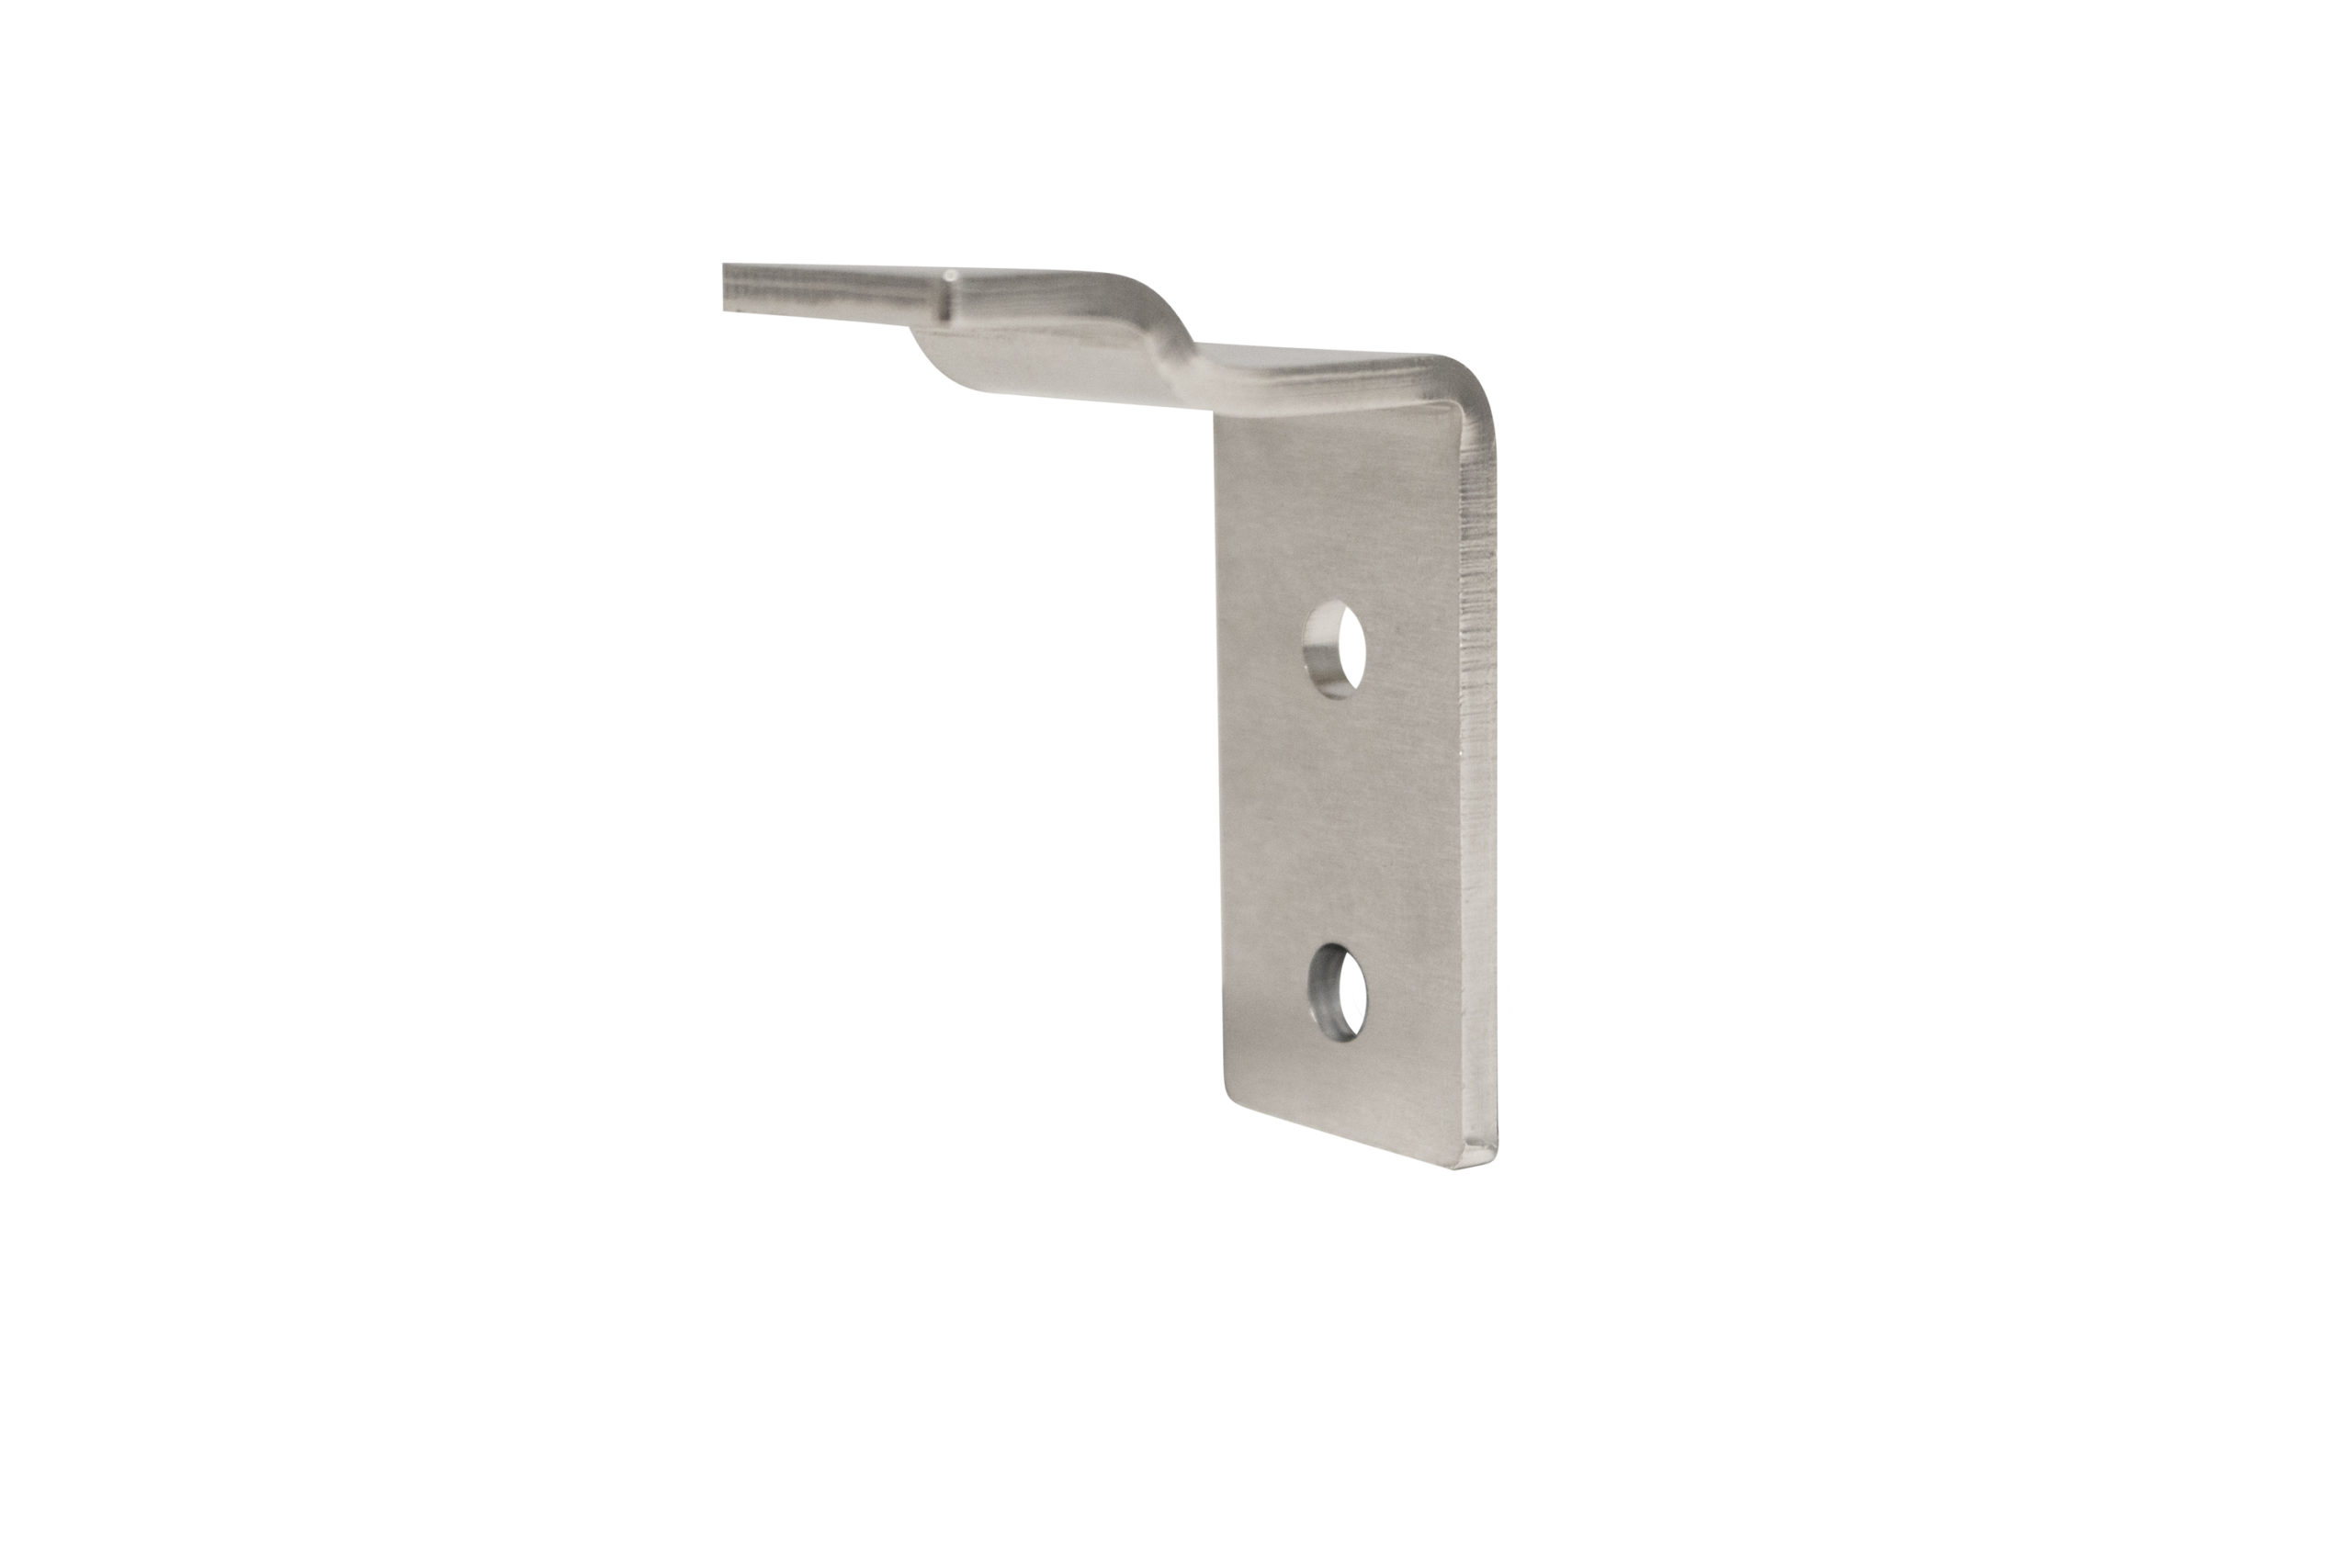 Bradley 9111 Stainless Steel Clothes Hook